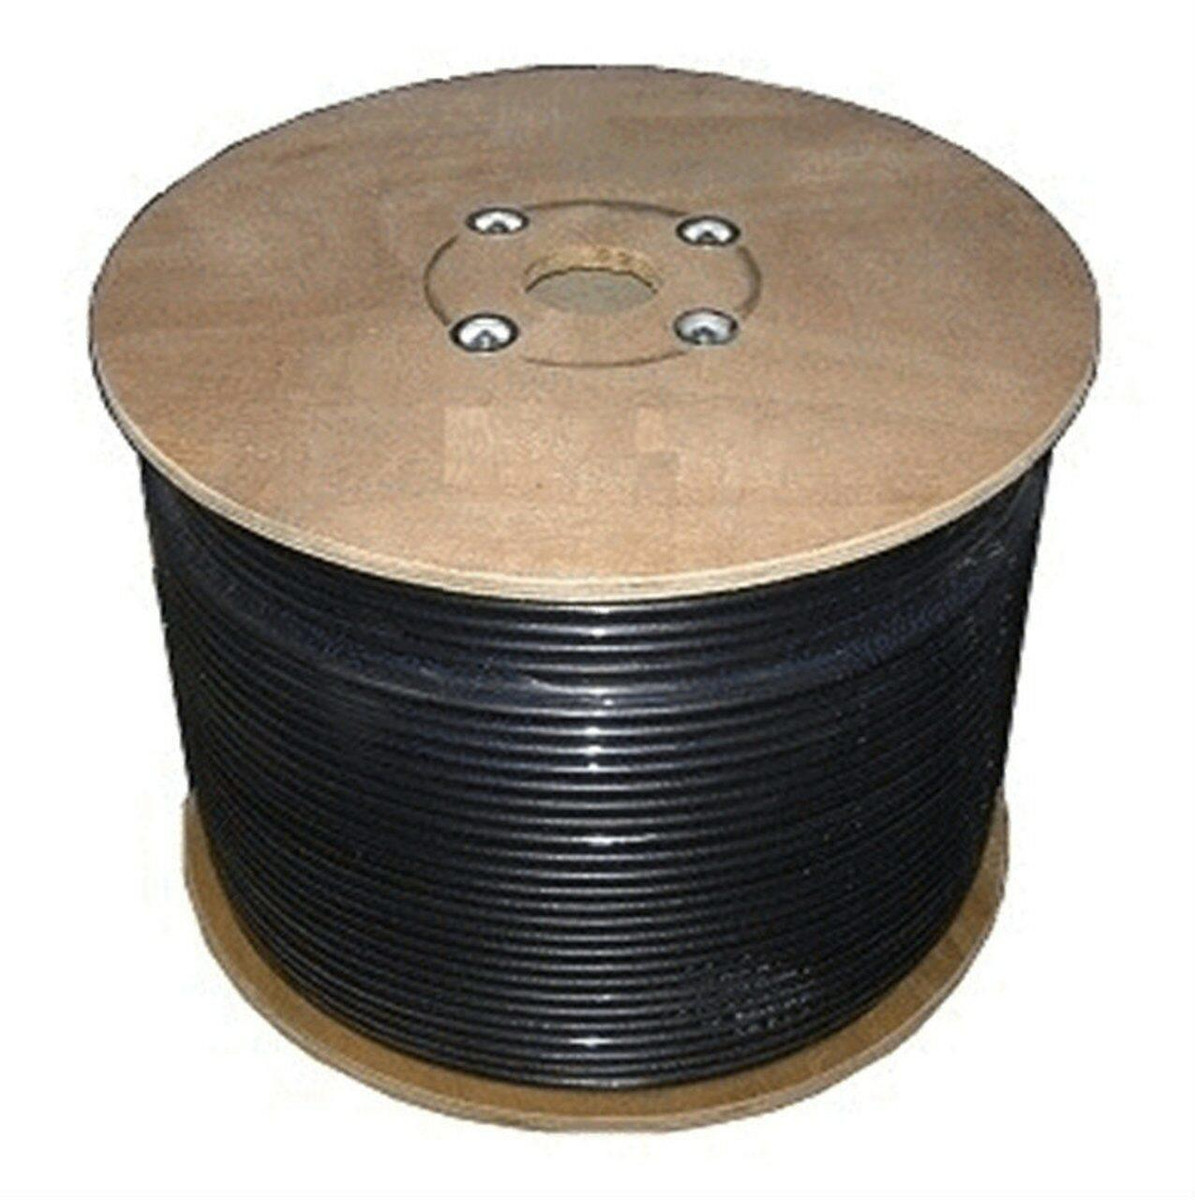 Bolton Tech Bolton 240 Black Color Low Loss Cable No Connectors or Priced Per Foot Equivalent to LMR240